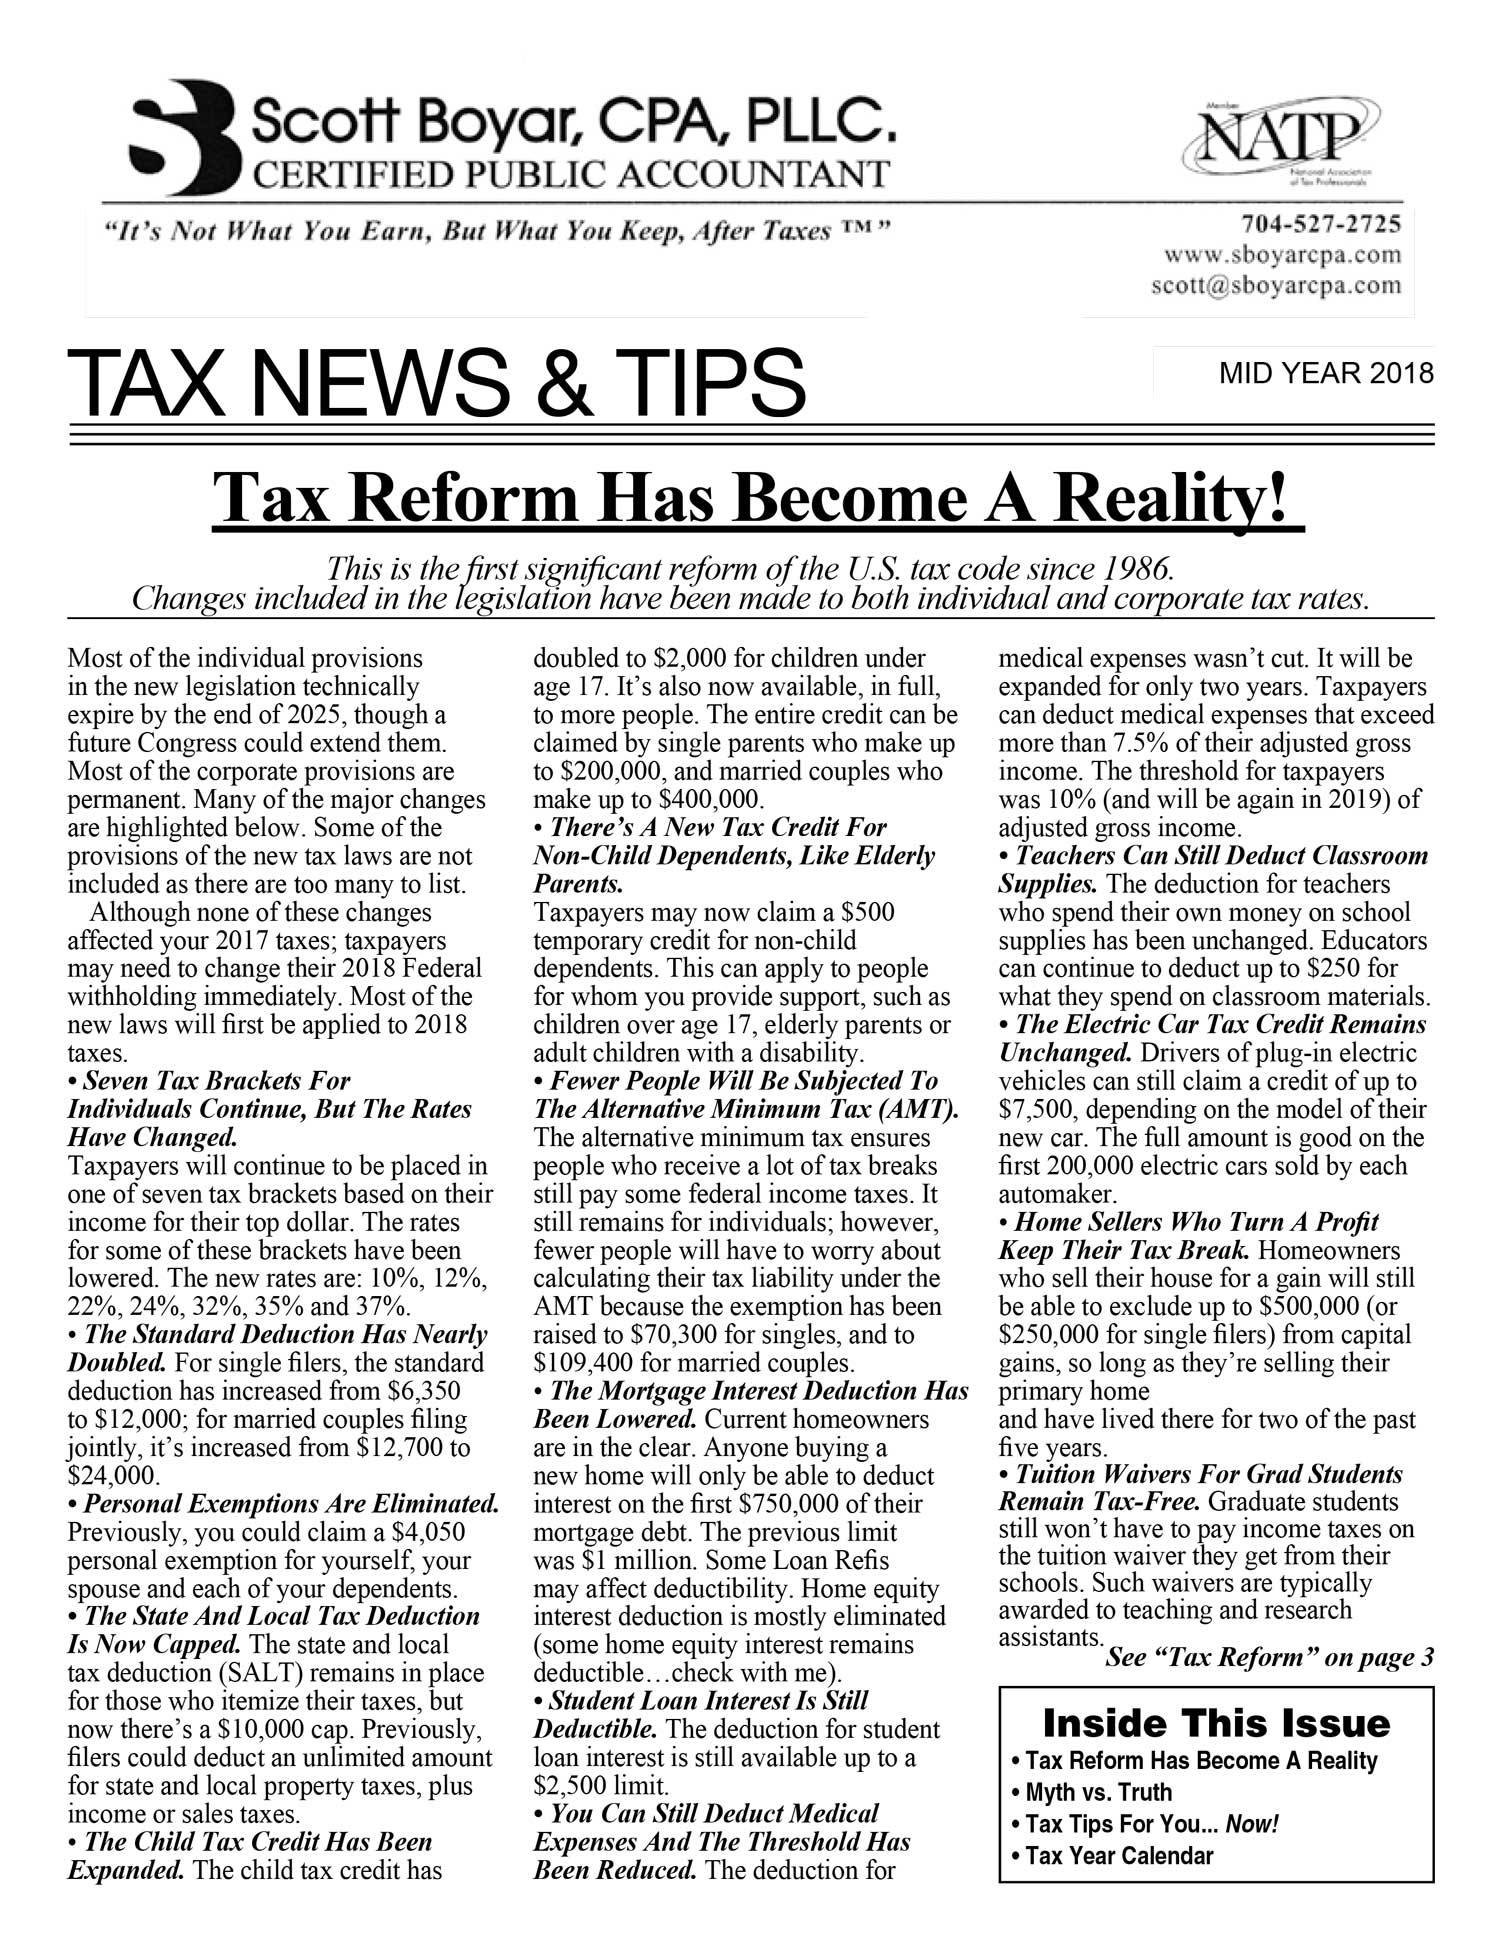 Tax-News-&-Tips-Mid-Year-2018-1